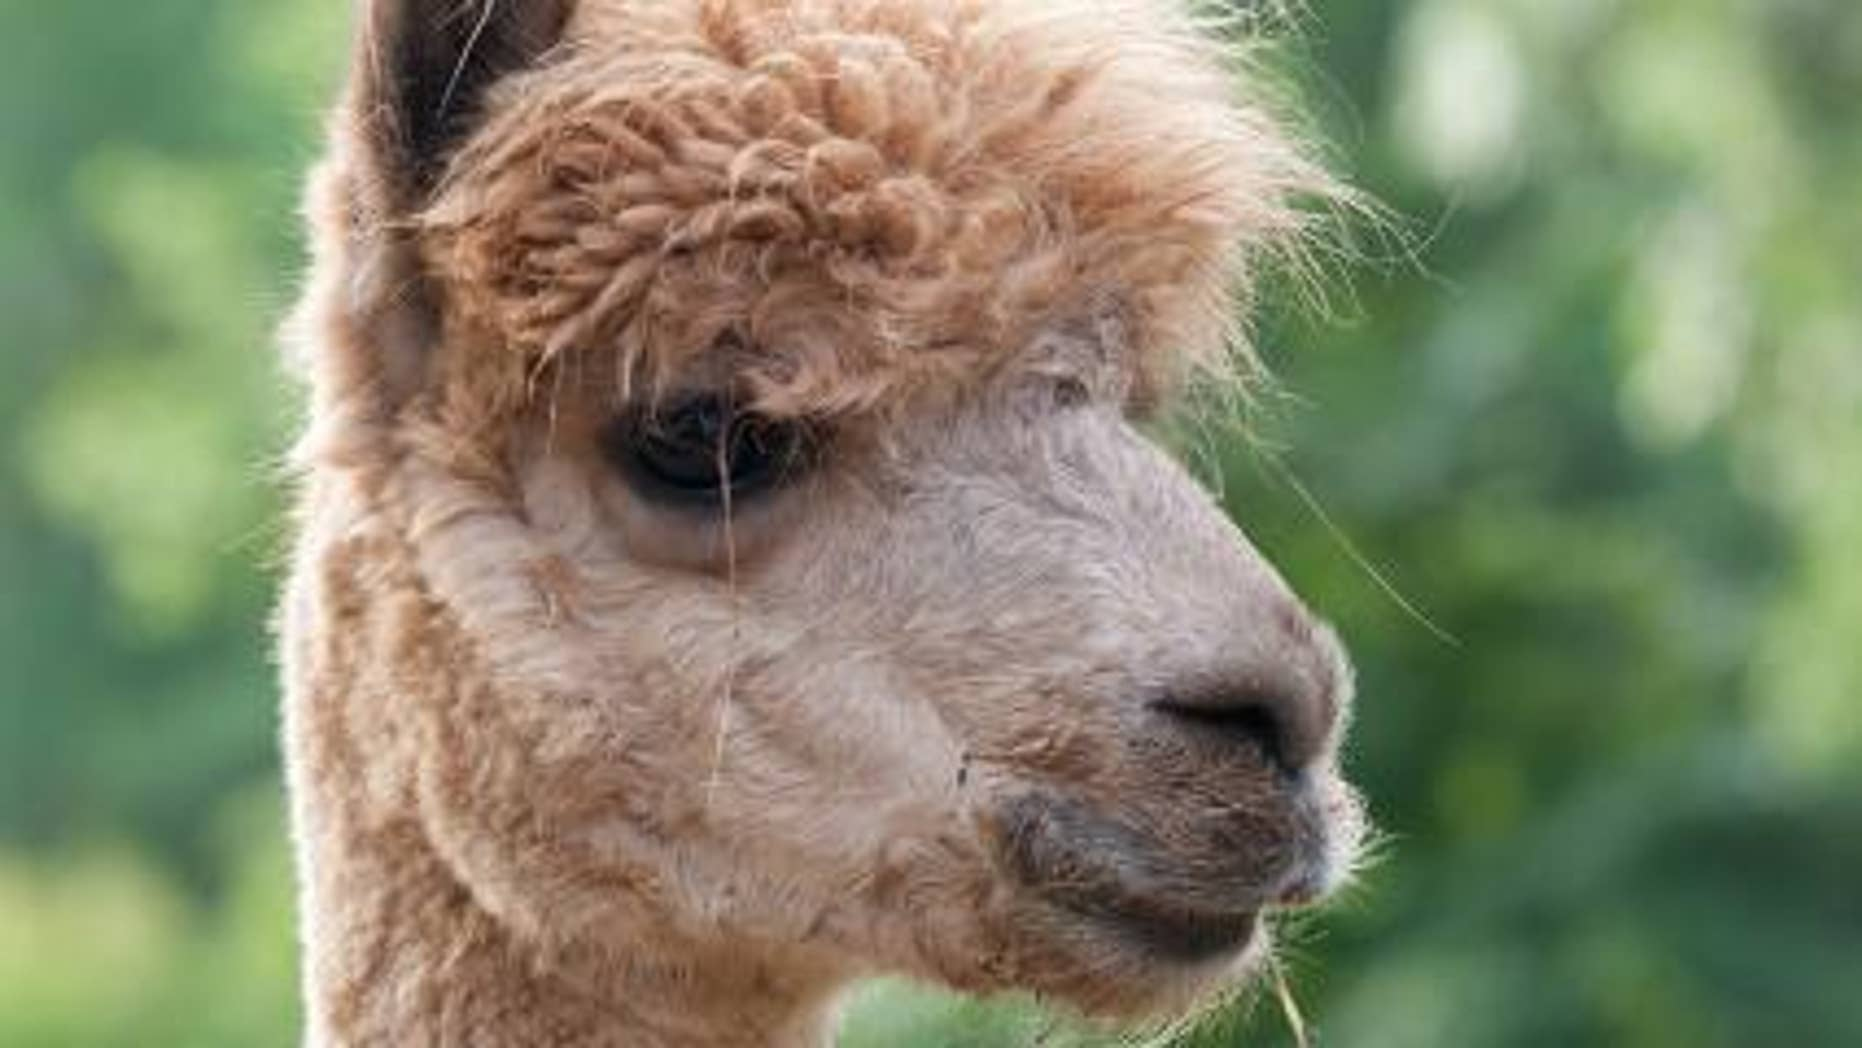 A Louisiana woman is accused of shooting her pet llama named Earl who she says attacked her. (nationalzoo.si.edu)